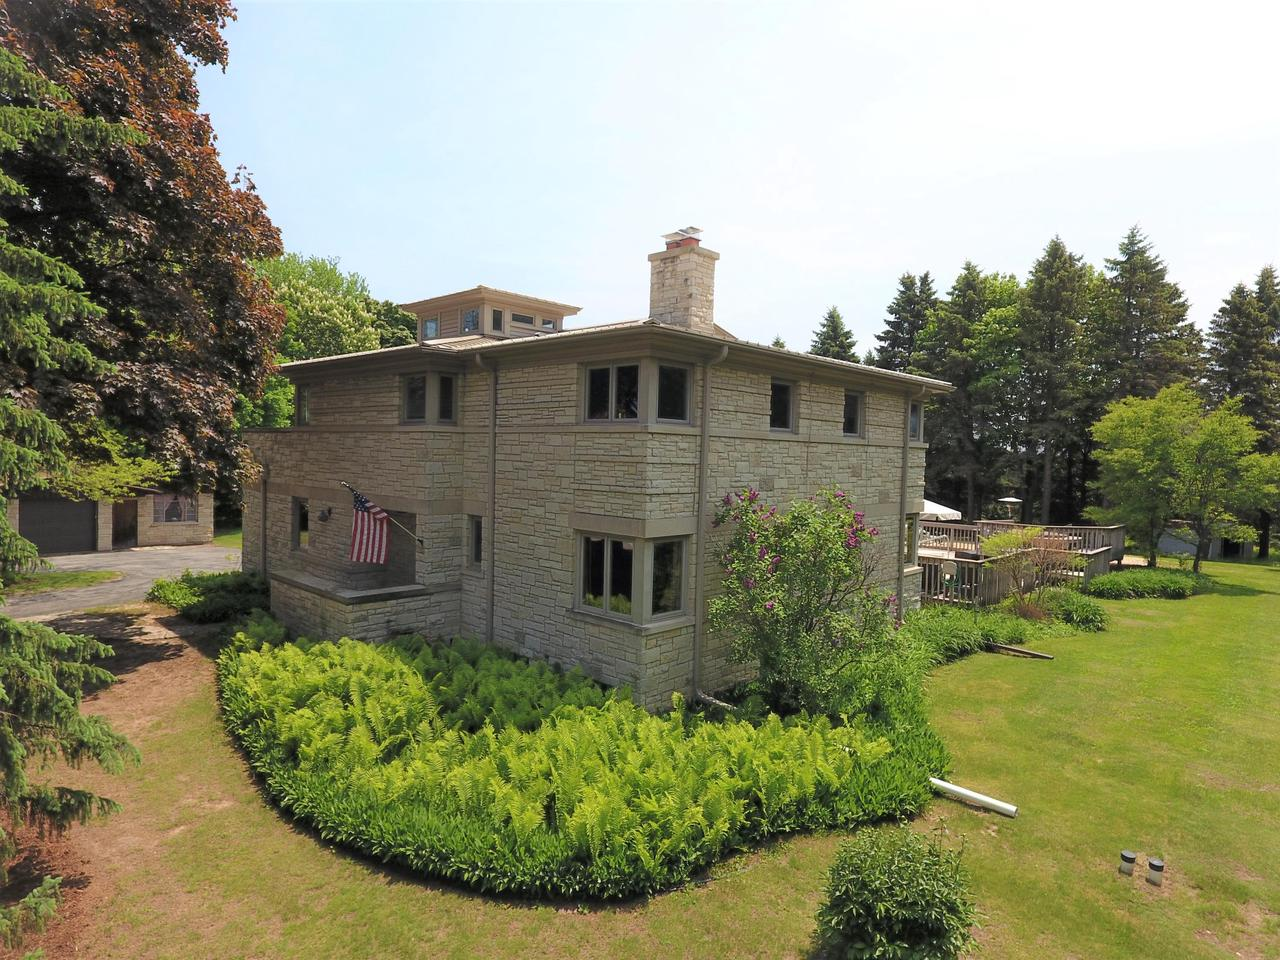 First time offered this Town of Grafton Frank LLoyd Wright Style home is among only a handful in Wisconsin. Private 2.18 Acre Yard abuts park. Impeccably maintained: inground salt-water pool 2012; spa 2017; PVC deck 2012; steam boiler, piping, expansion tank 2013; tear-off roofs 2011; 200 amp upgrade; mound upgraded. Rooms feature old-world craftsman plaster walls, a custom Venetian plaster finish in main bath & includes a heated towel rack and all Kohler Memoirs fixtures, original crown molding, baseboards. Birdseye maple hardwood floors are found throughout the residence.Original lannon stone fireplace. 2nd floor has 4 brms, 3 with porcelain sinks. The 4th brm up reveals an unaltered mural painted by a local artist. Additional staircase to 3rd level watch tower.